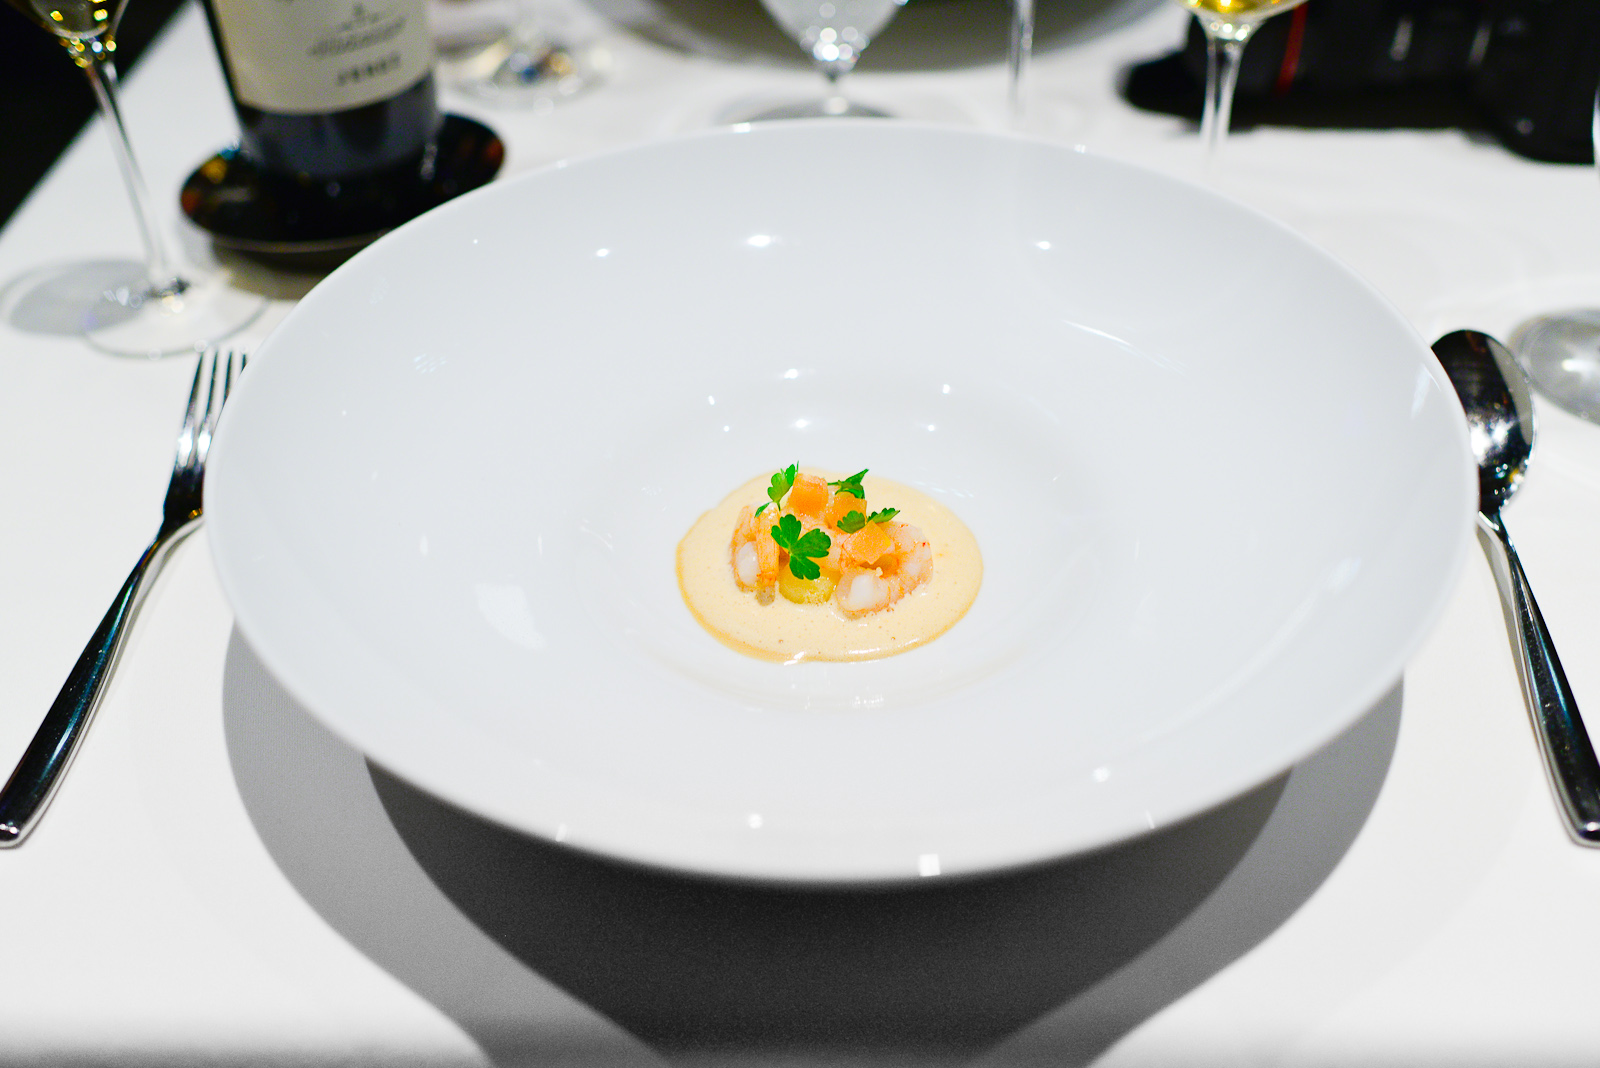 15th Course: 2000 Suquet de gambas (Suquet of prawns)